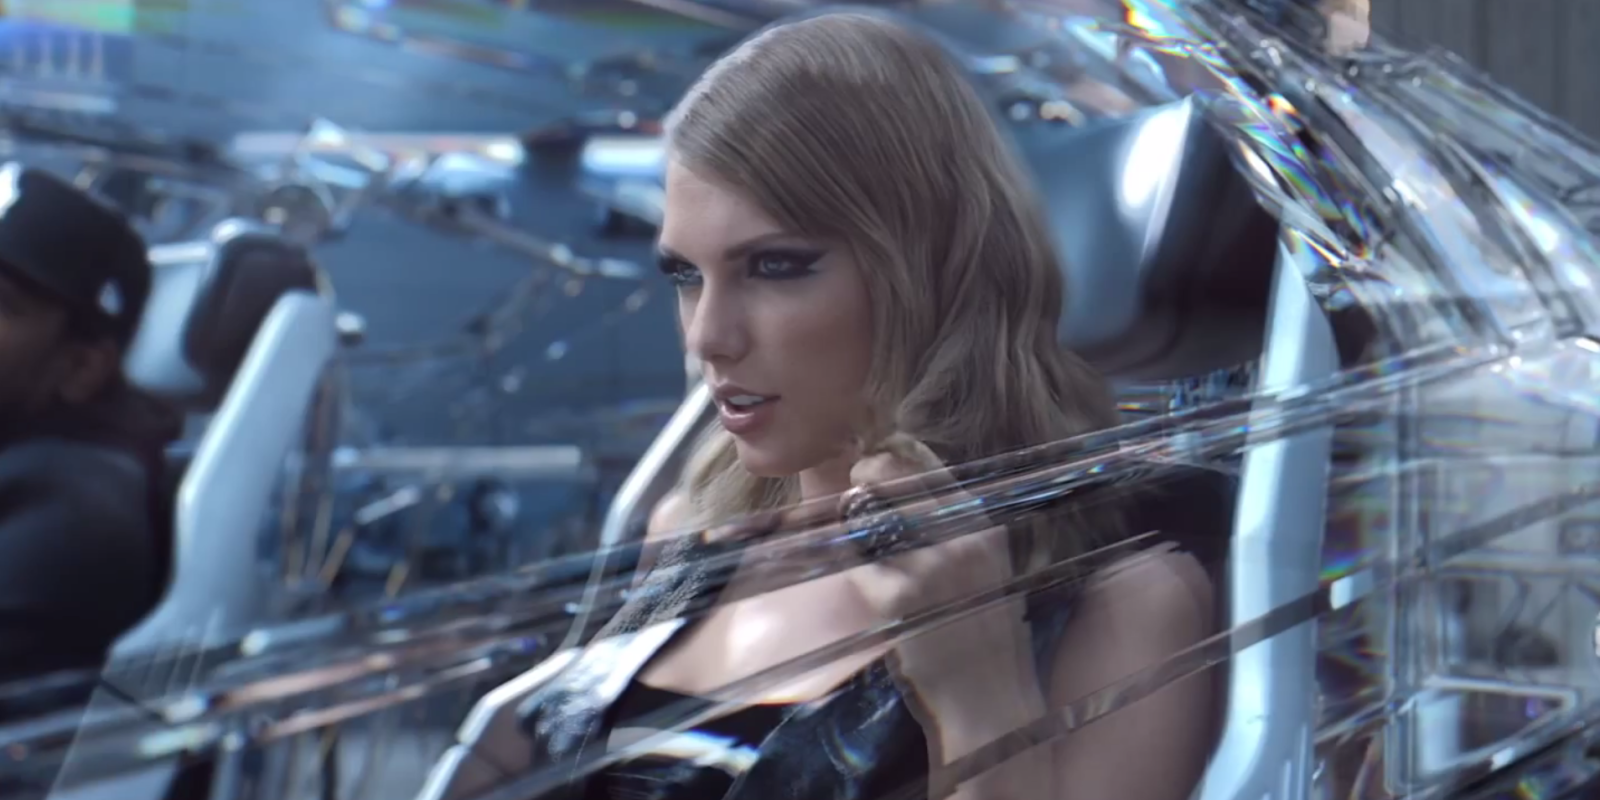 Watch Taylor Swift Eat a Wall In This 'Bad Blood' Blooper